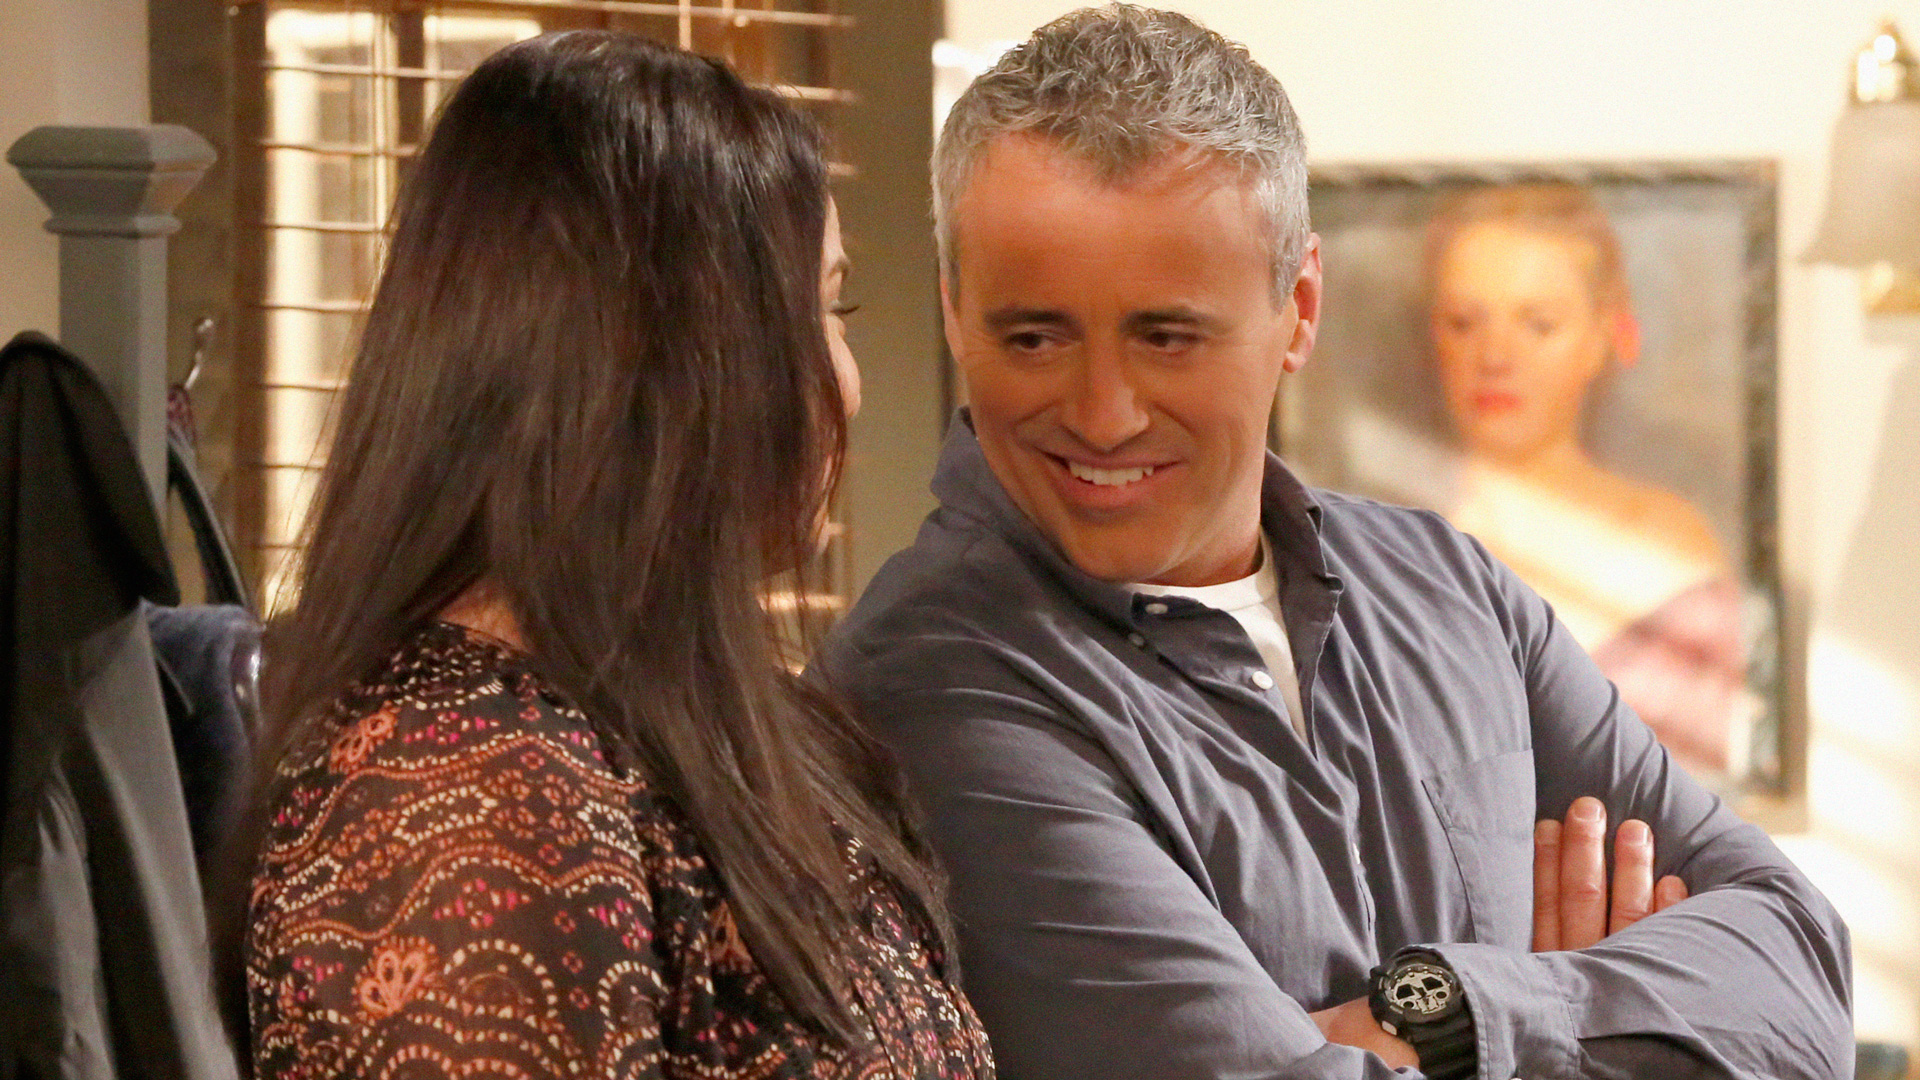 This grey-haired guy only has eyes for one lucky lady—Andi.